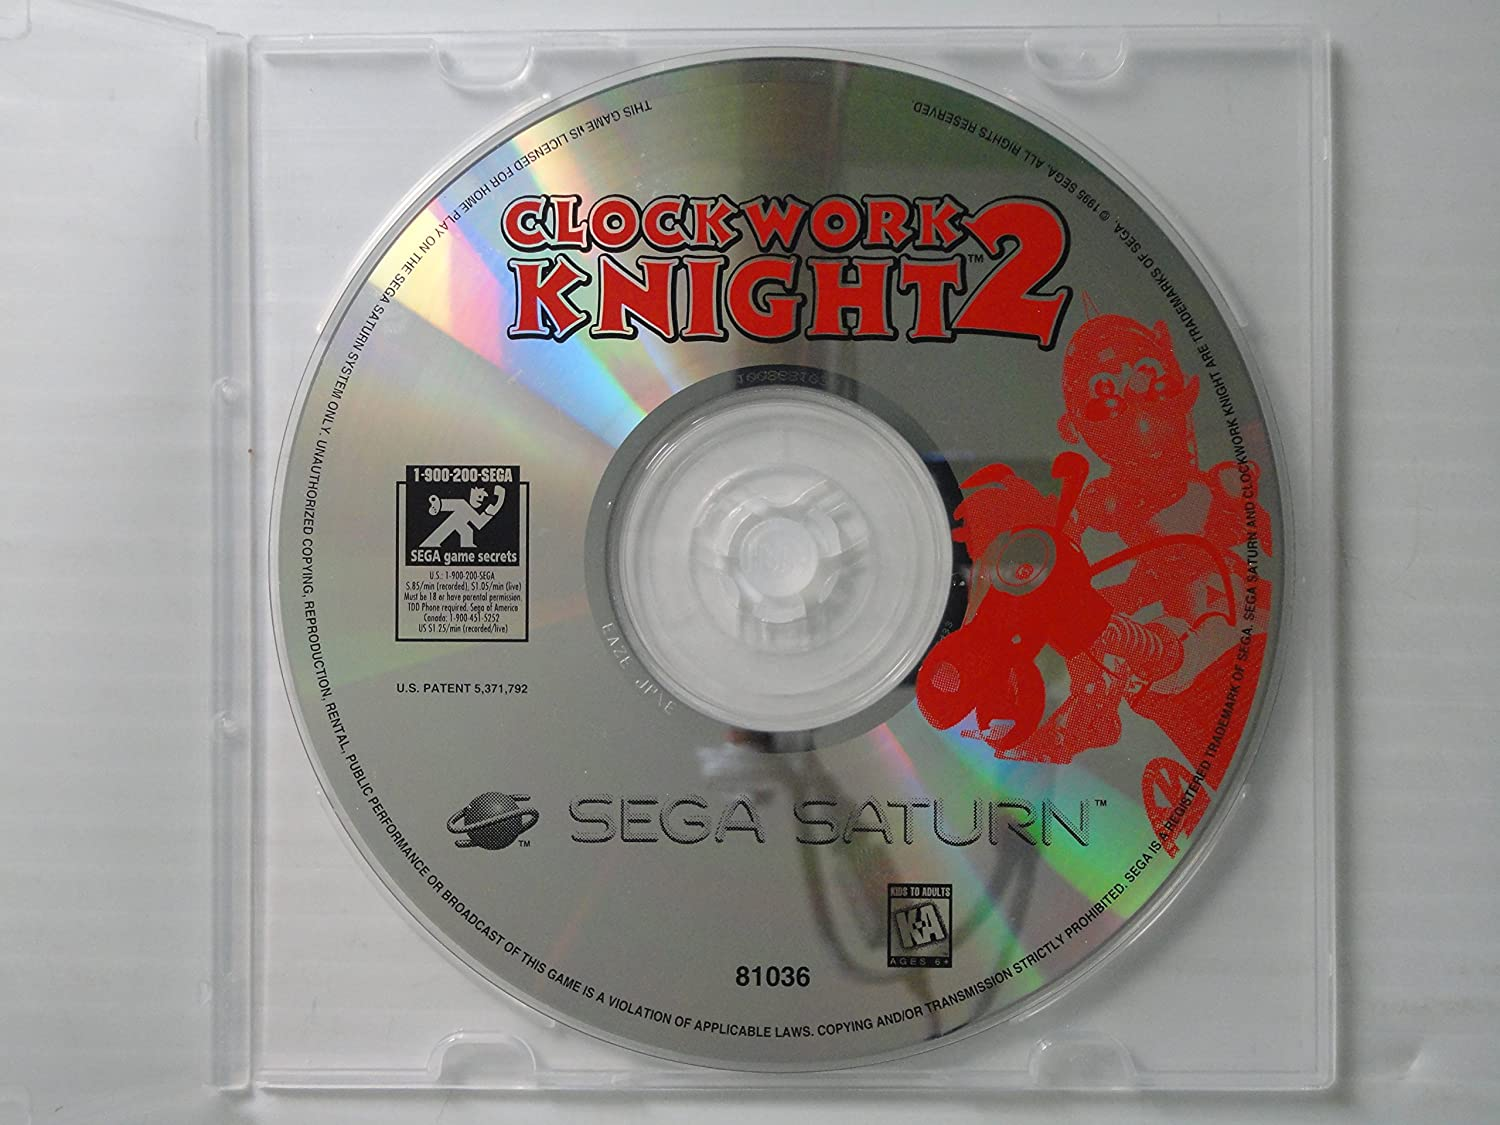 Clockwork Knight II - Sega Saturn